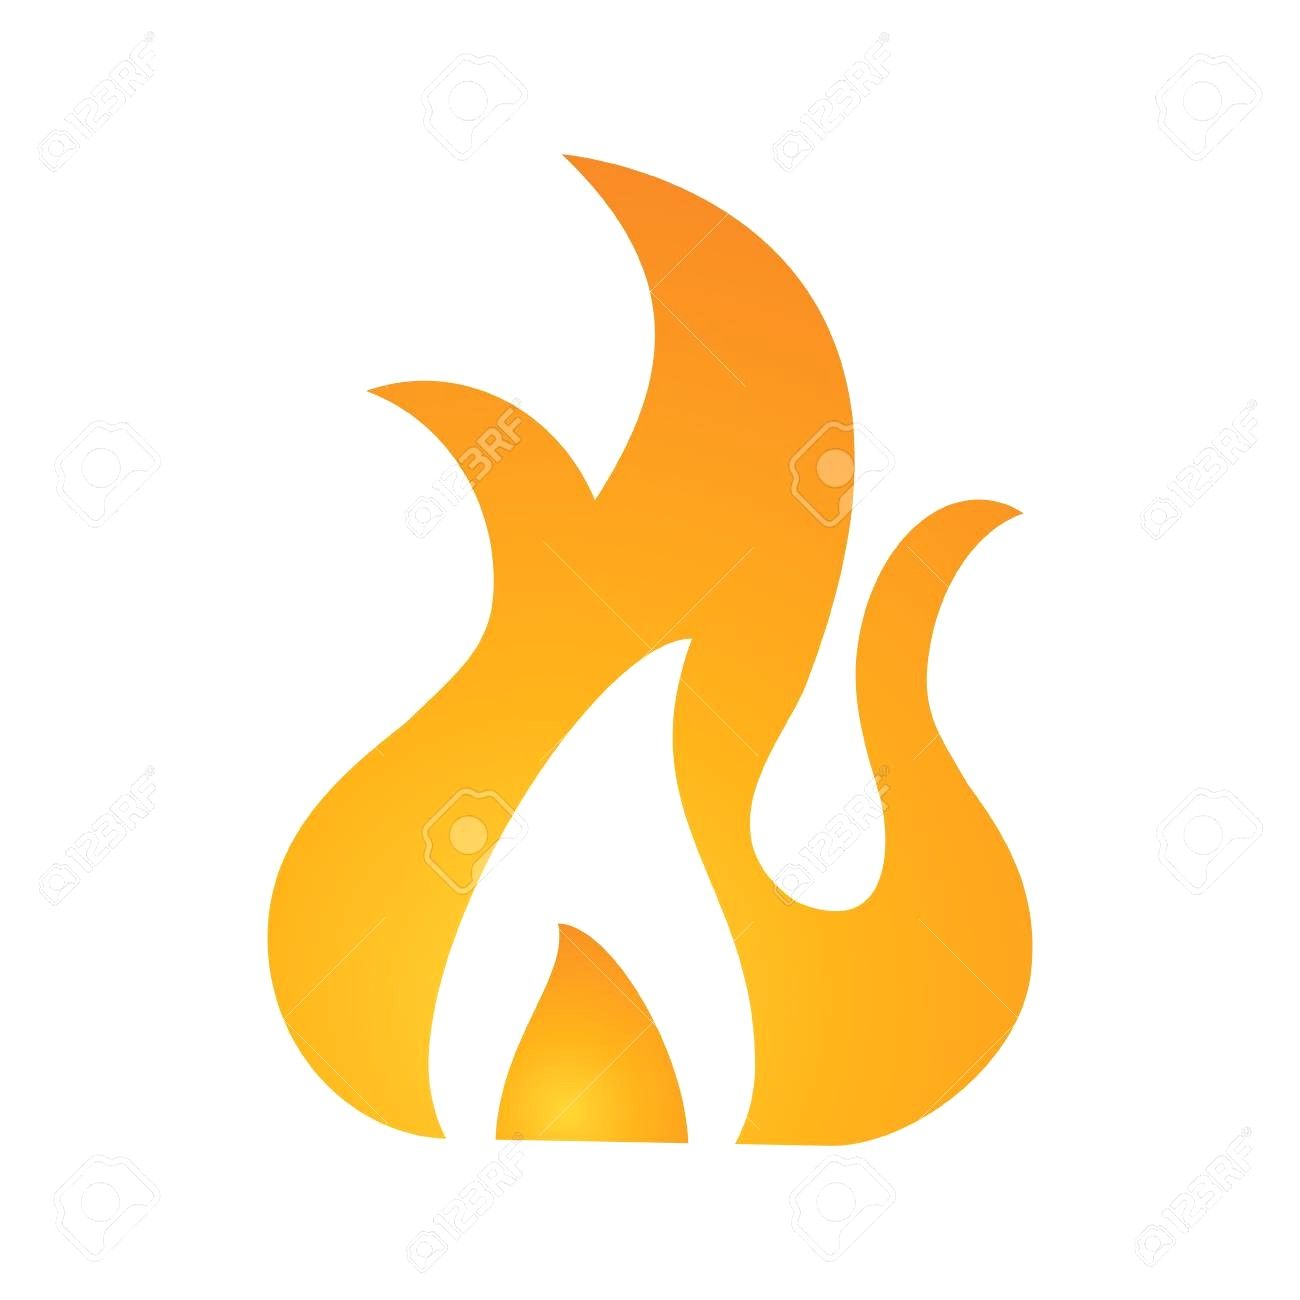 1300x1300 80202913 Hot Fire Flame Icon Vector Illustration Design Graphic 13